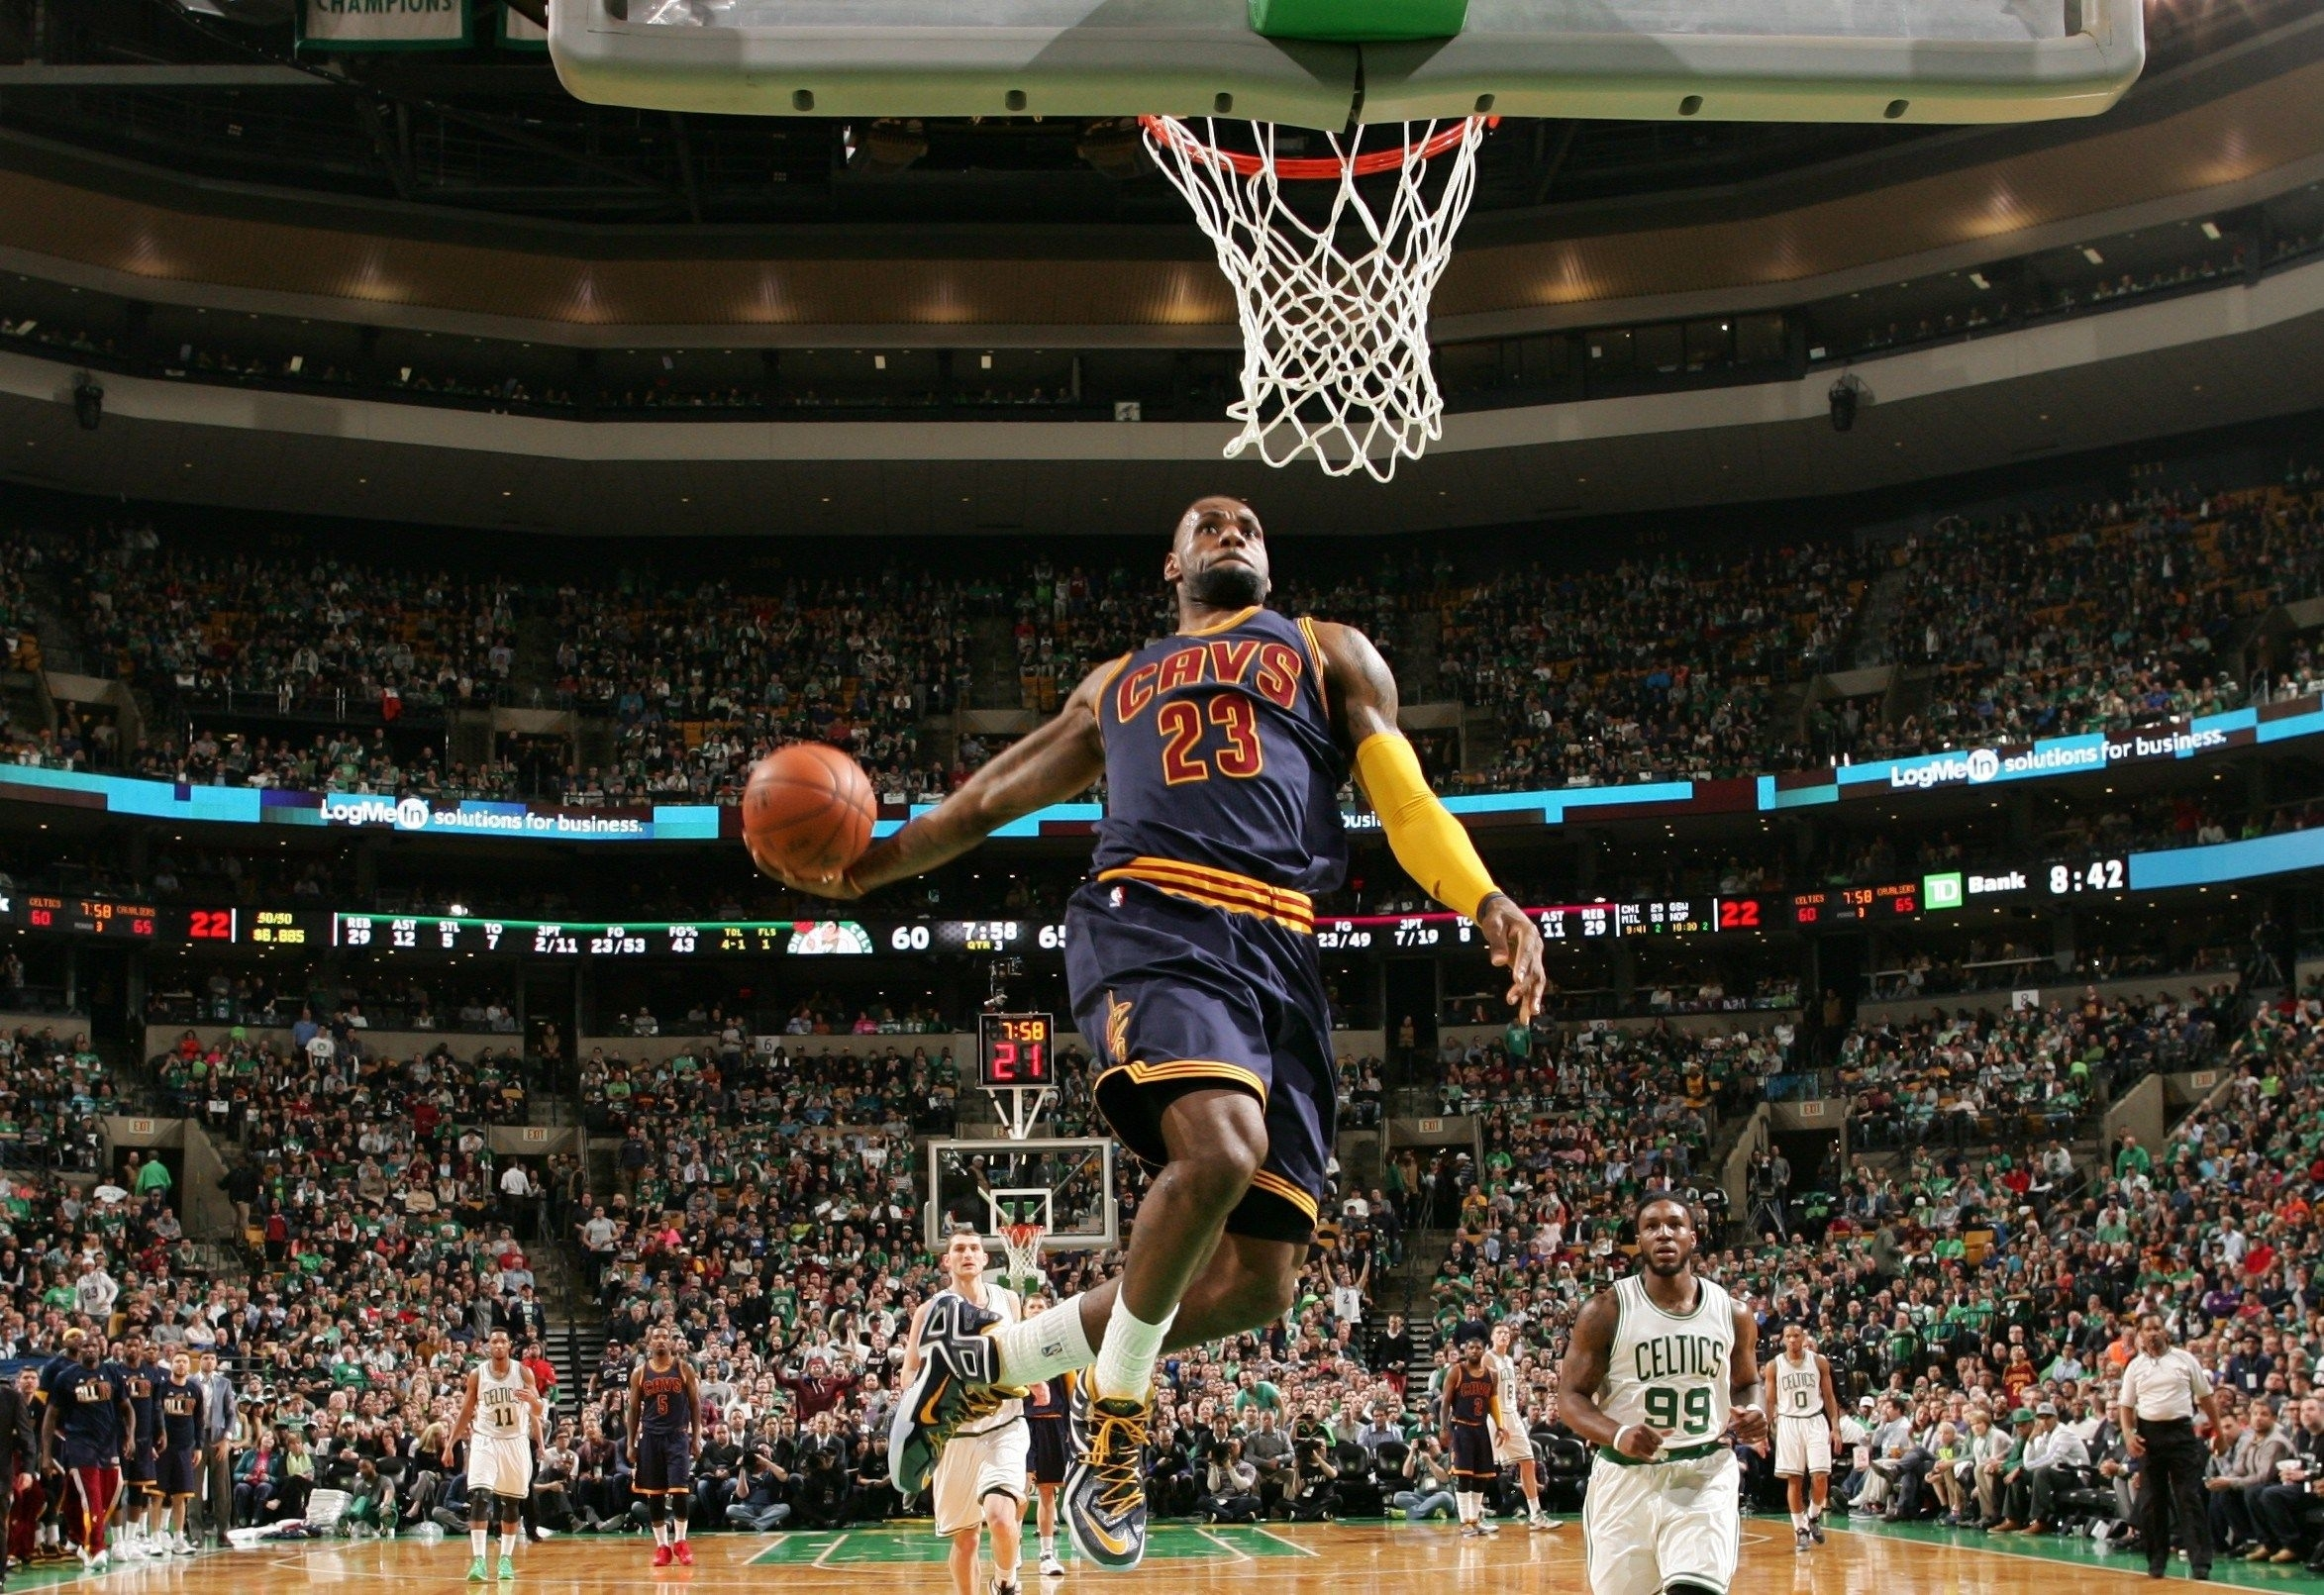 image for lebron james dunk wallpaper full hd #i14ev | basket :d